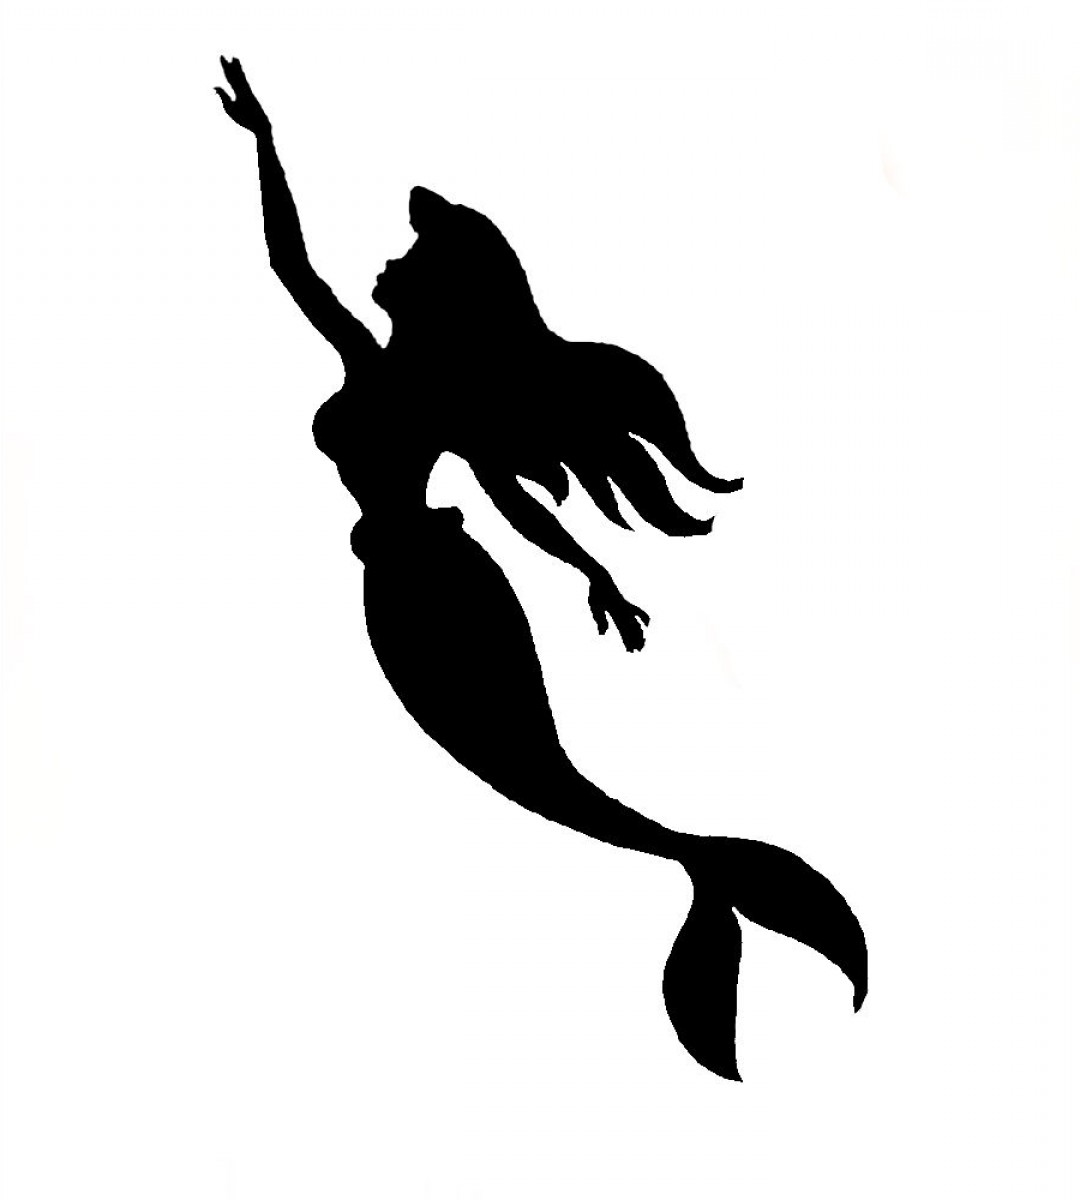 Ariel The Little Mermaid Silhouette.